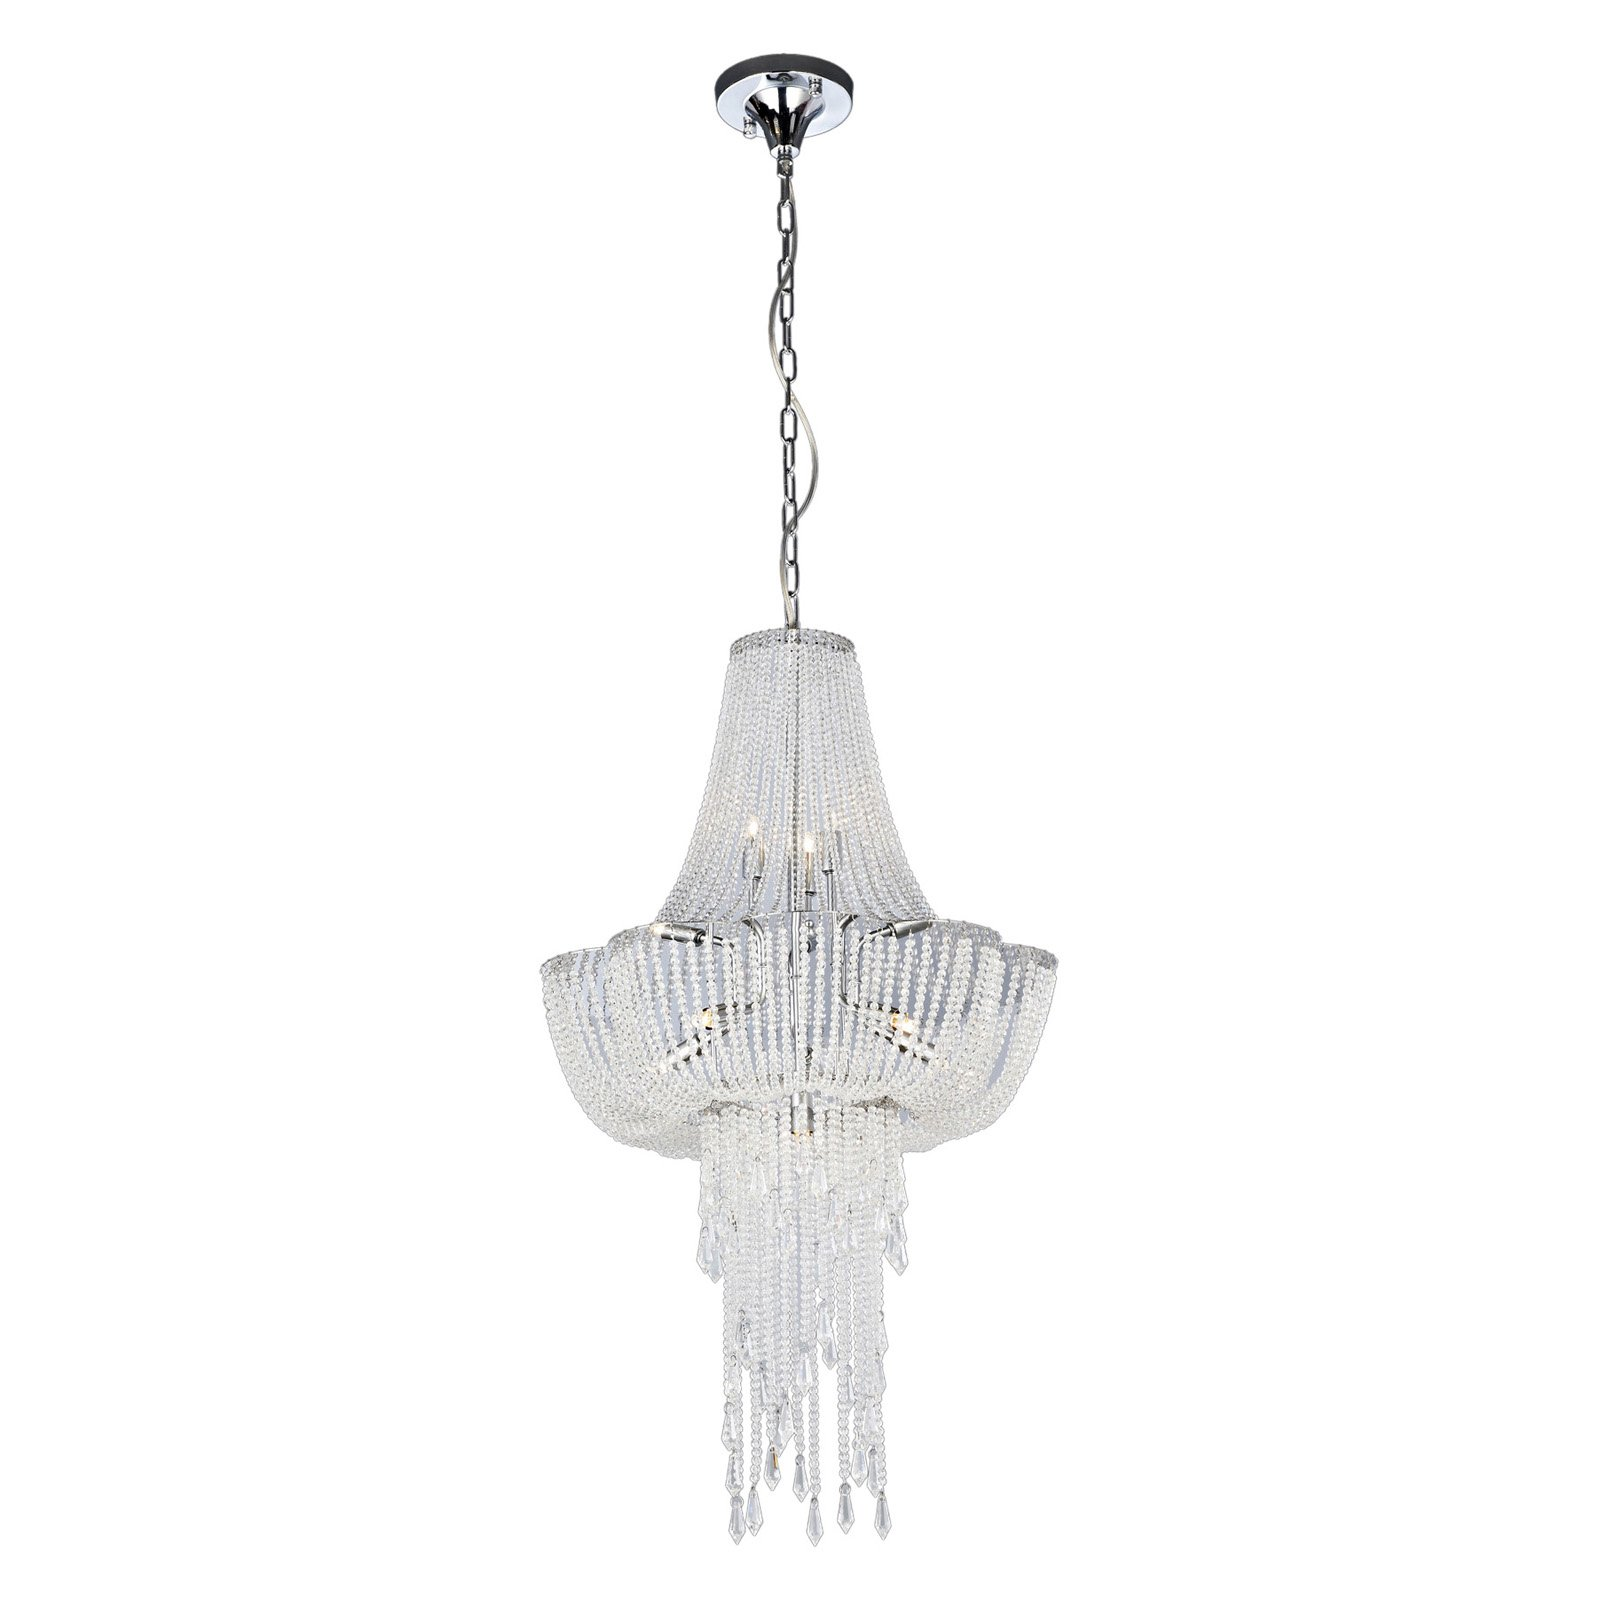 Lamp chandelier wonderful cellula chandelier for luxury home girly chandeliers for cheap small cheap chandeliers cellula chandelier arubaitofo Images